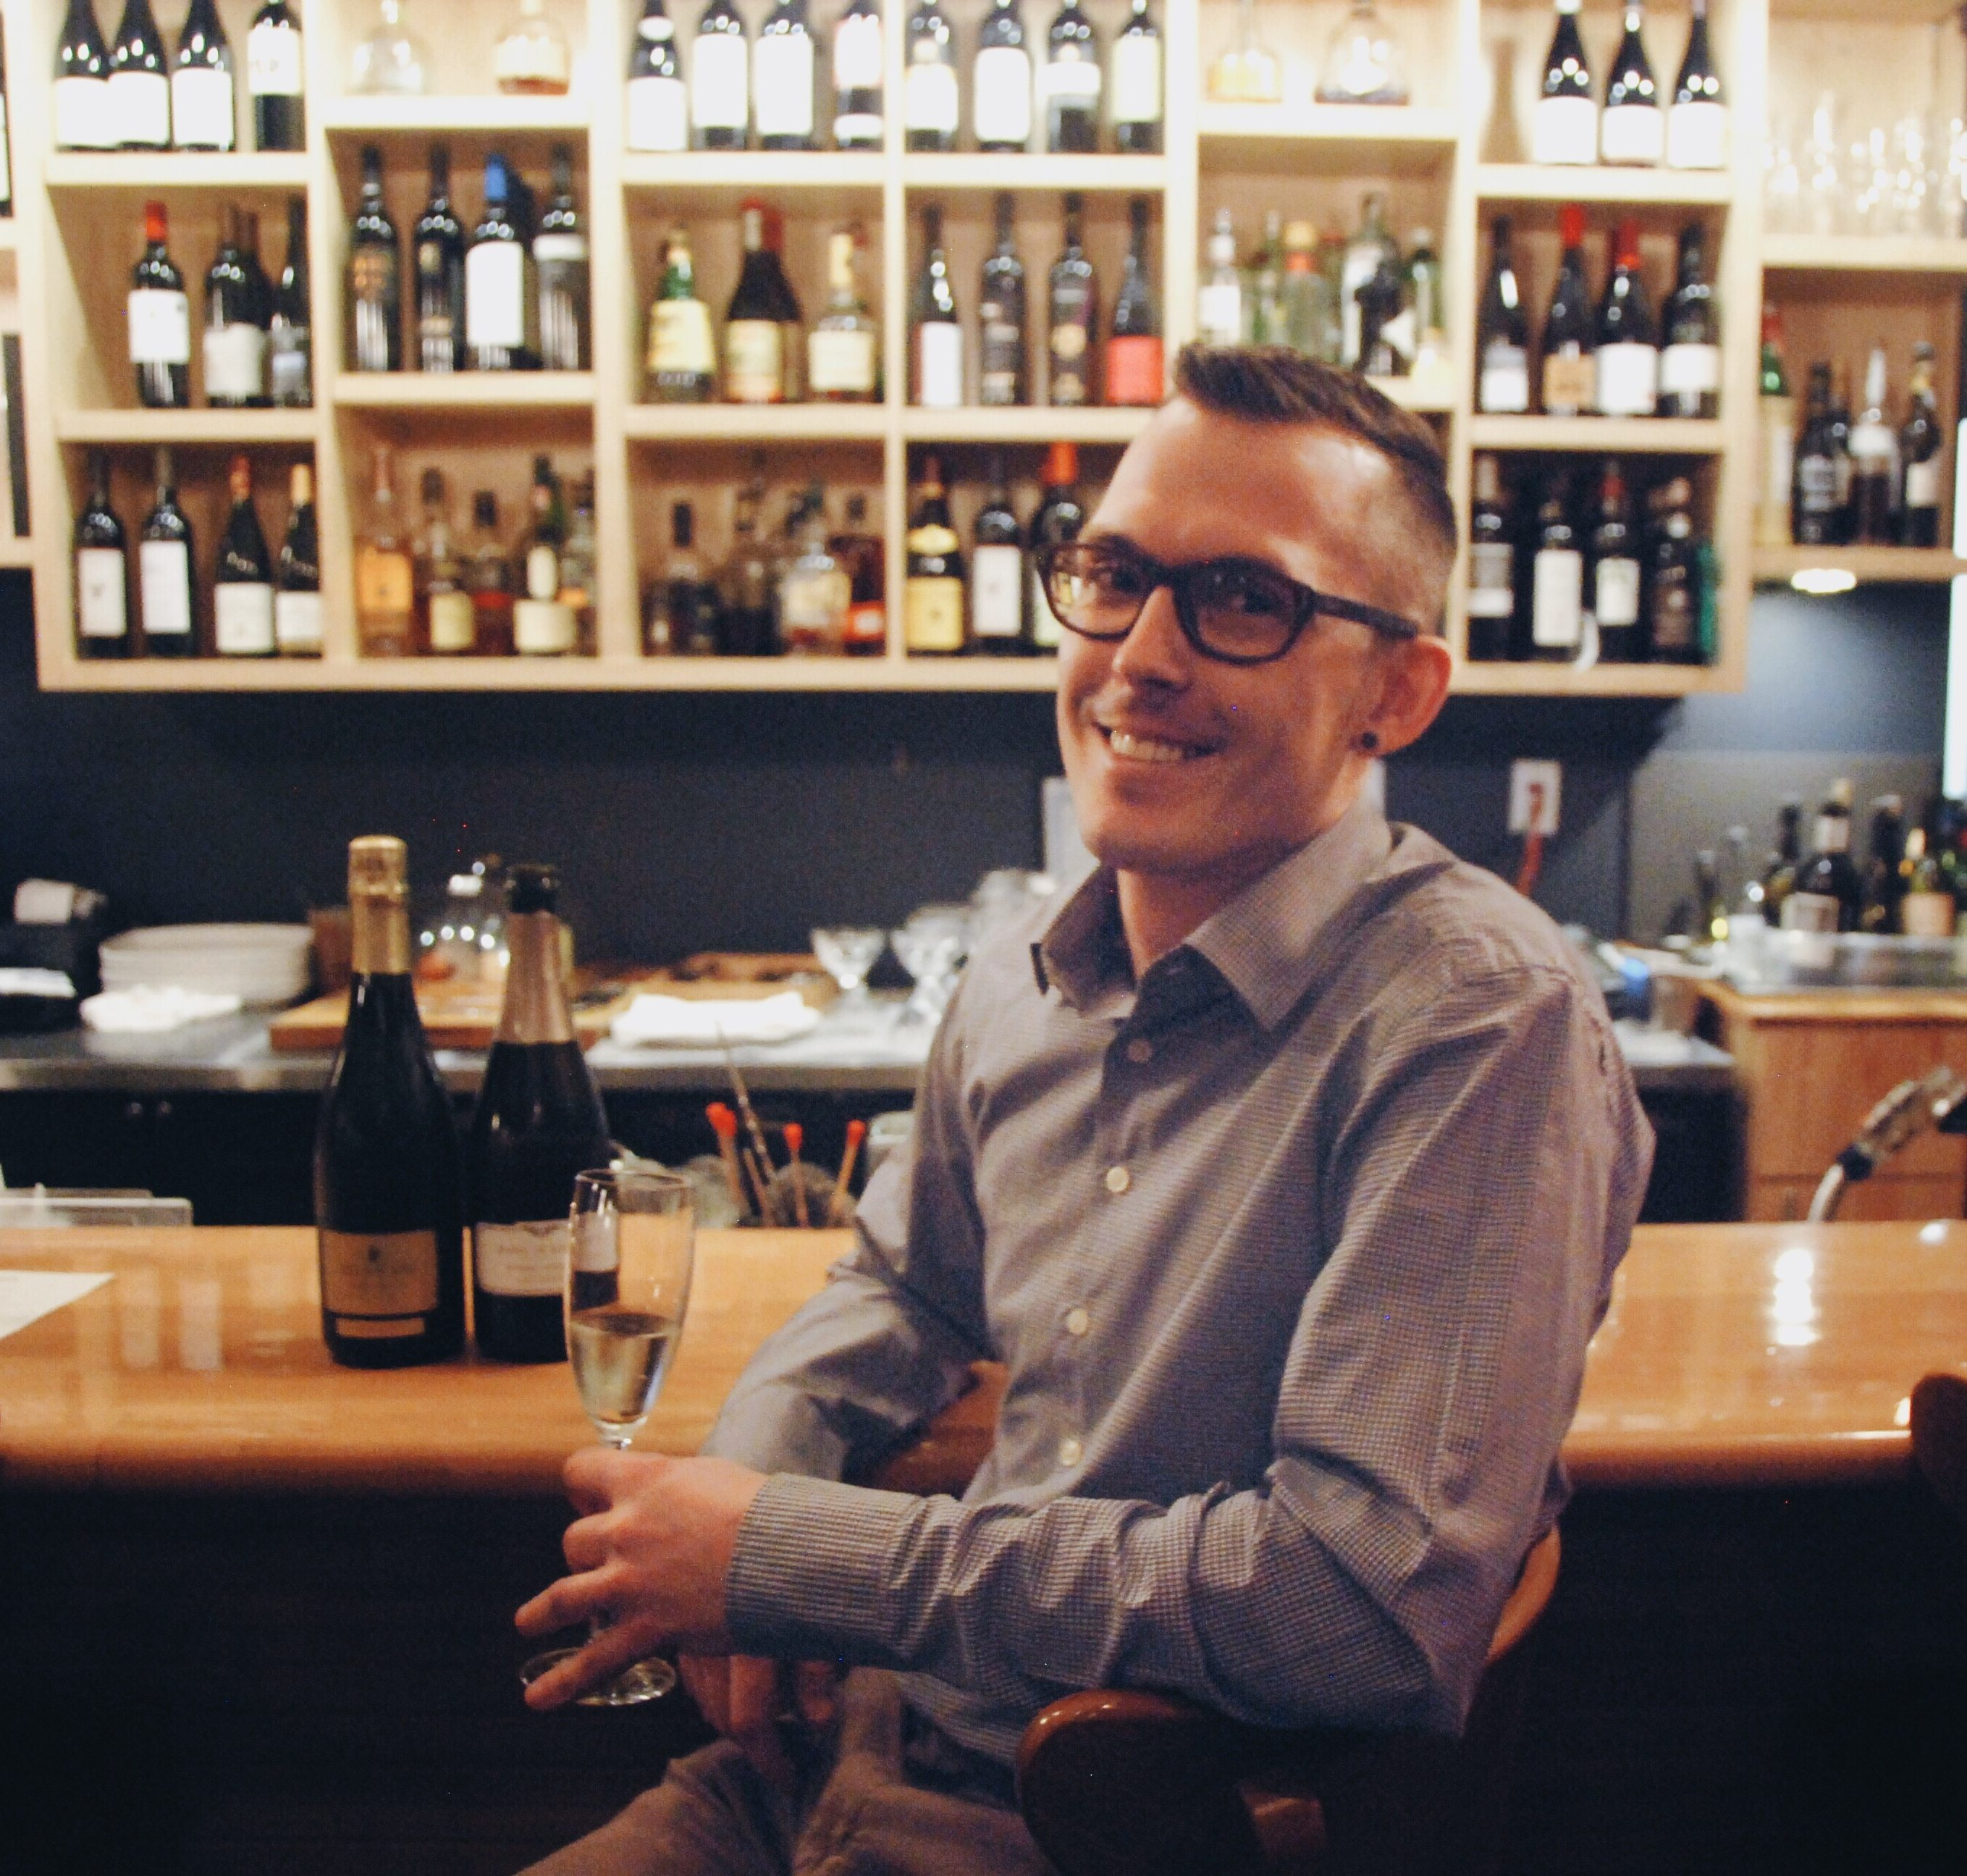 Evan Keaschuk says he'd be more than happy to pair an entire menu with sparkling wines. Photo by Katie Shapiro, Ottawa Magazine.